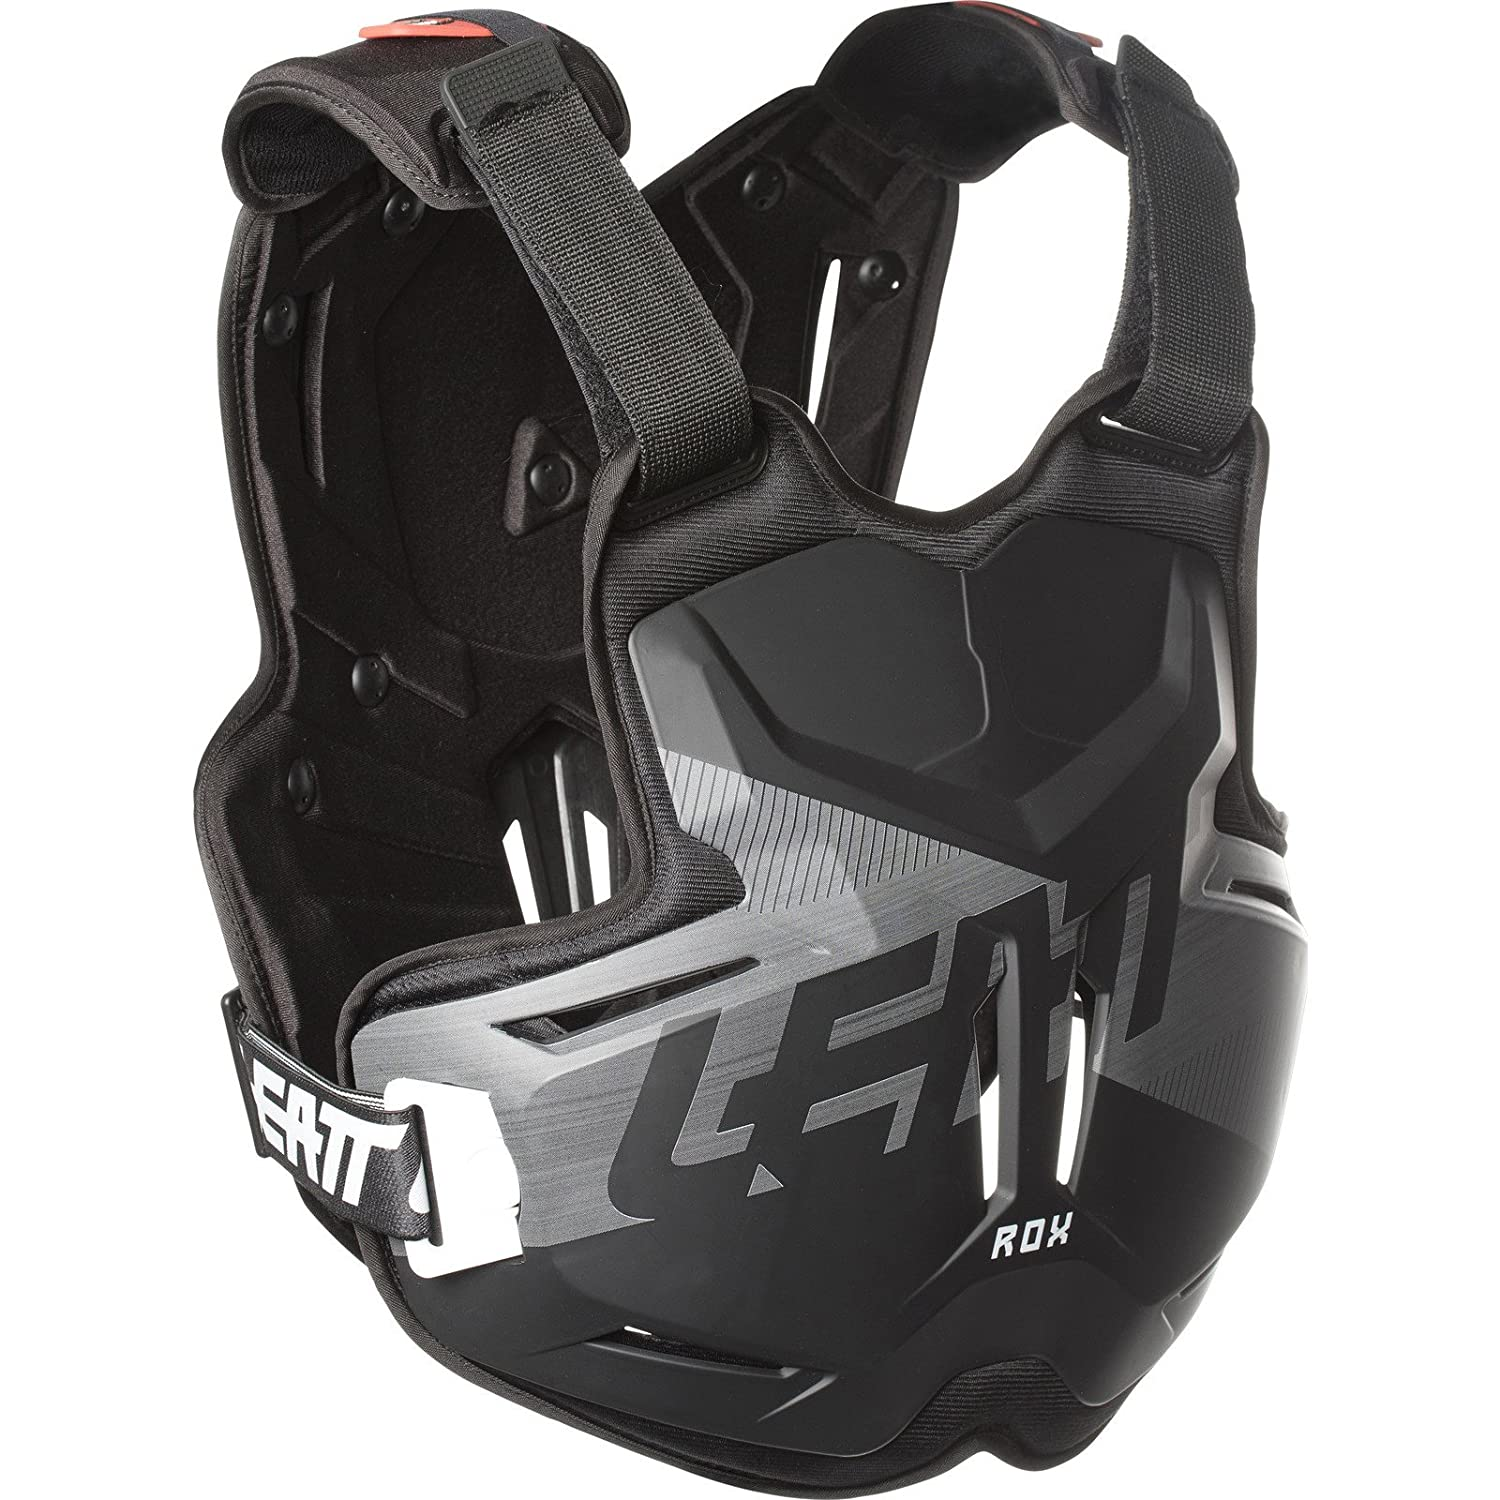 Leatt Unisex-Adult Chest Protector Lime,Adult